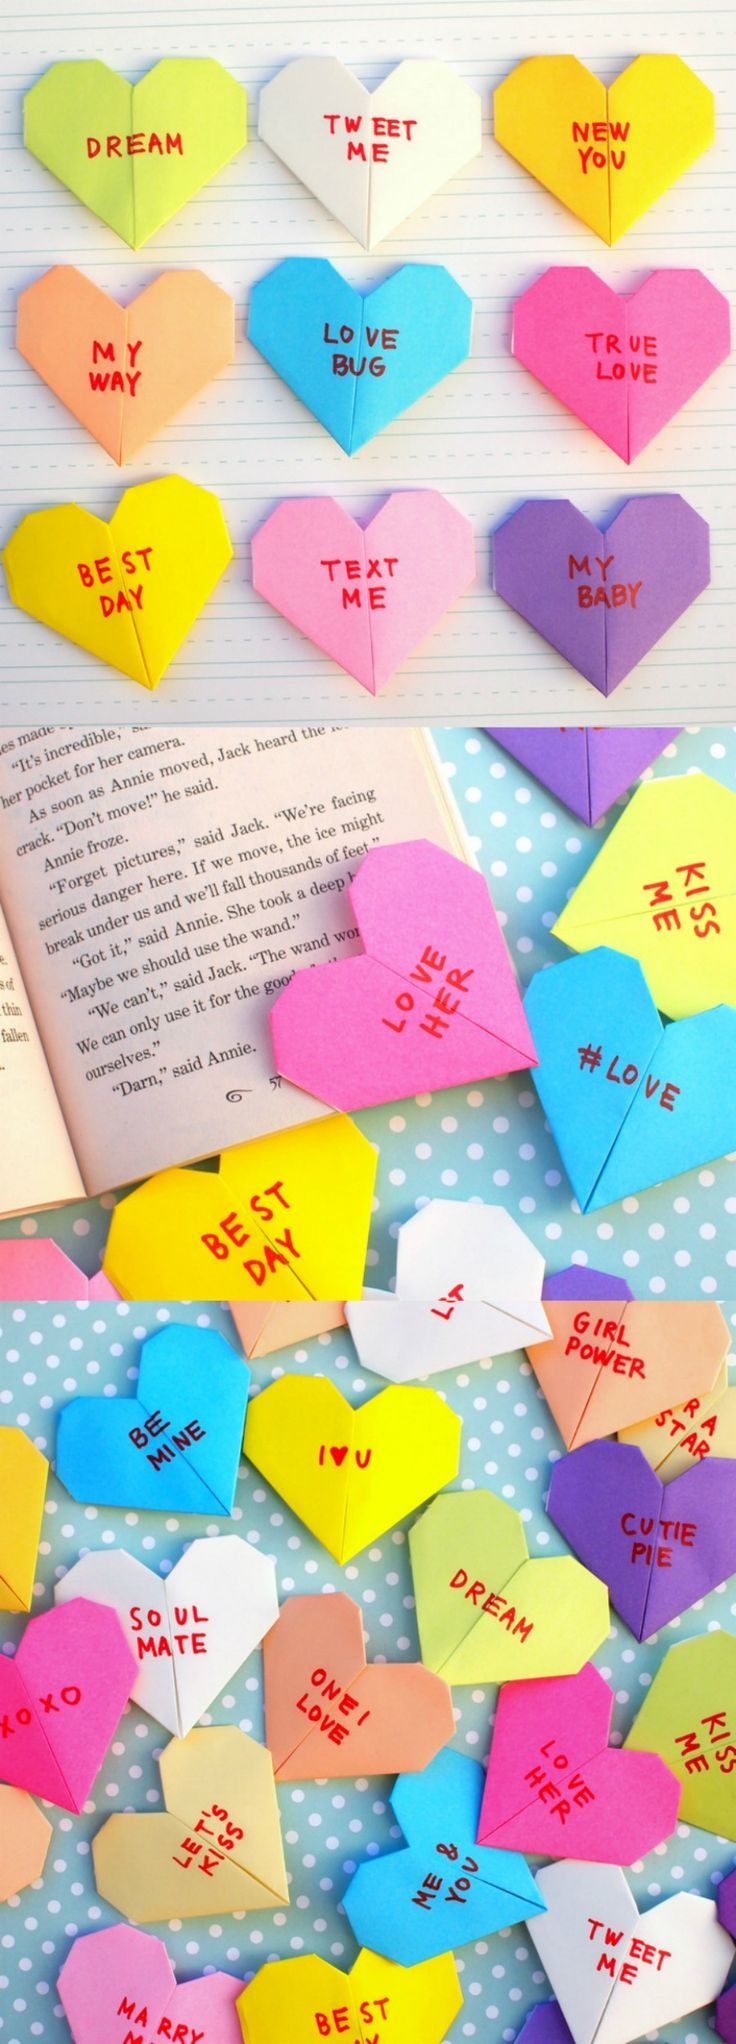 Learn How To Make An Origami Corner Bookmark With This Easy Tutorial Heart Looks Just Like A Conversation And You Can Write Fun